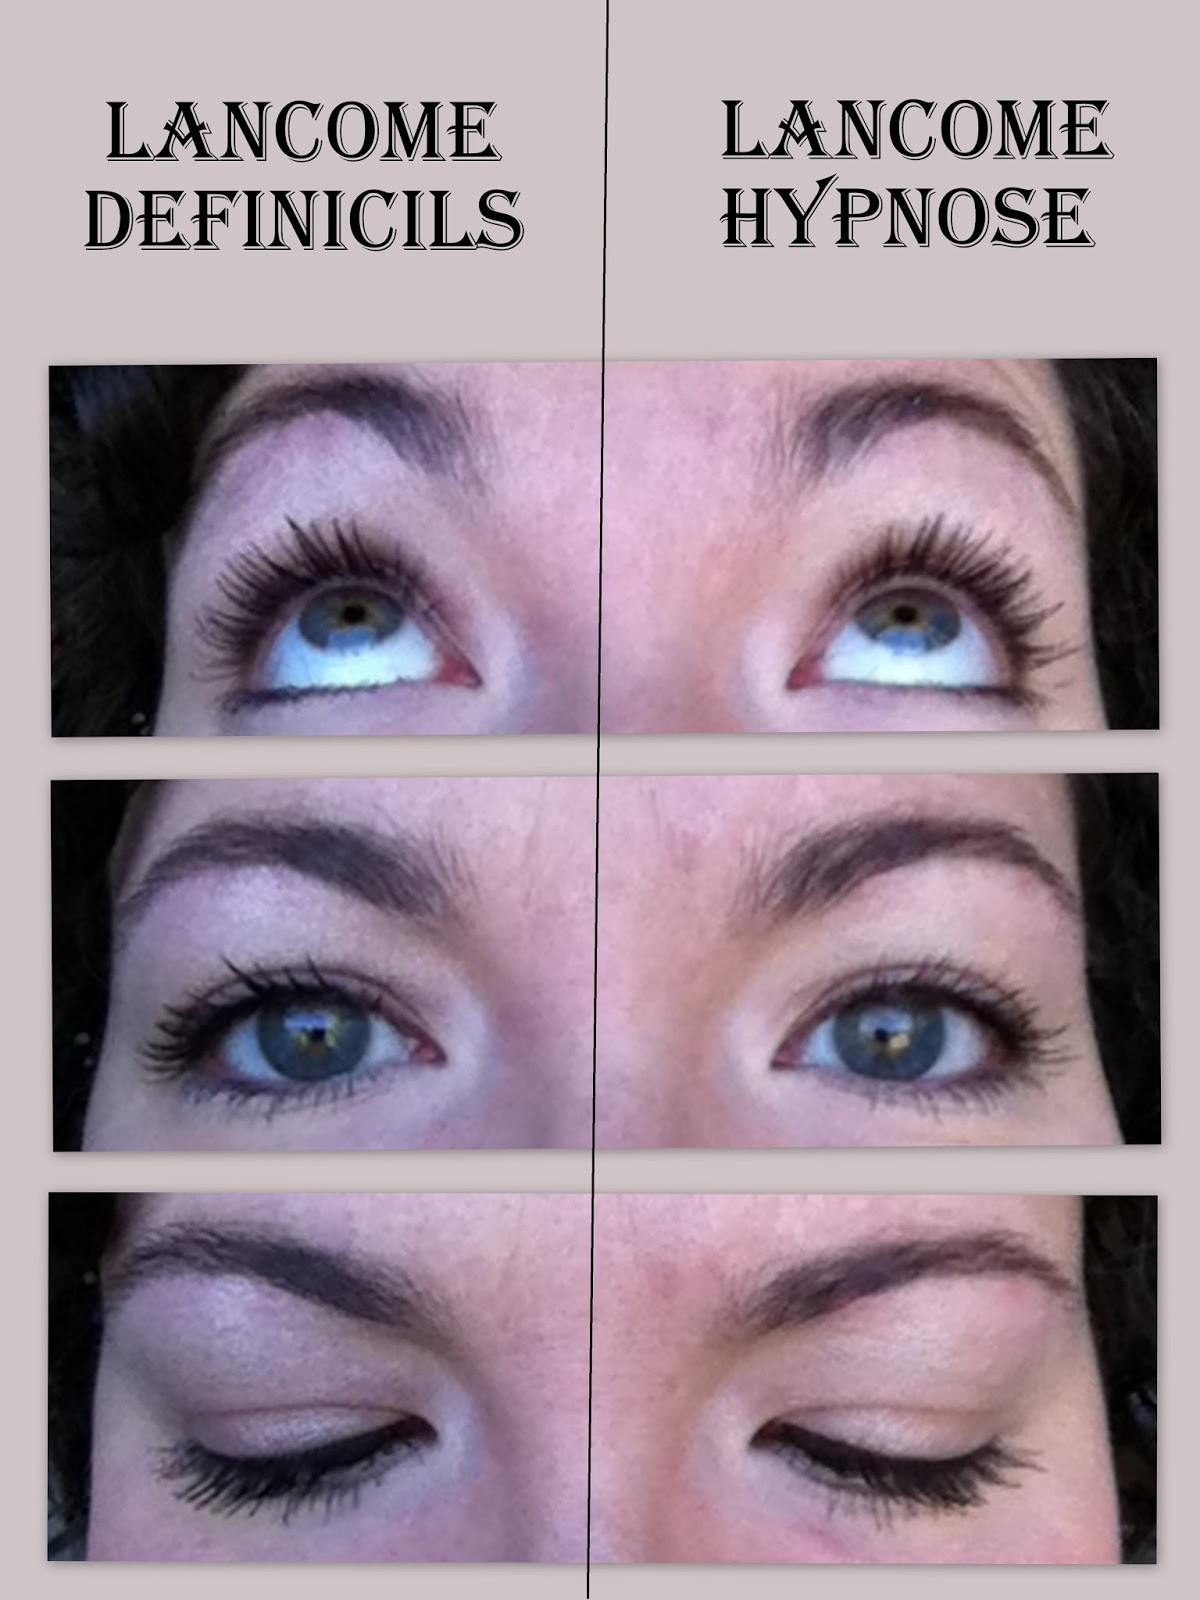 fb56e61ffc4 Here is a basic breakdown of each mascara, starting with their formula and  wand traits, moving on to how they apply, and then how they wear throughout  the ...